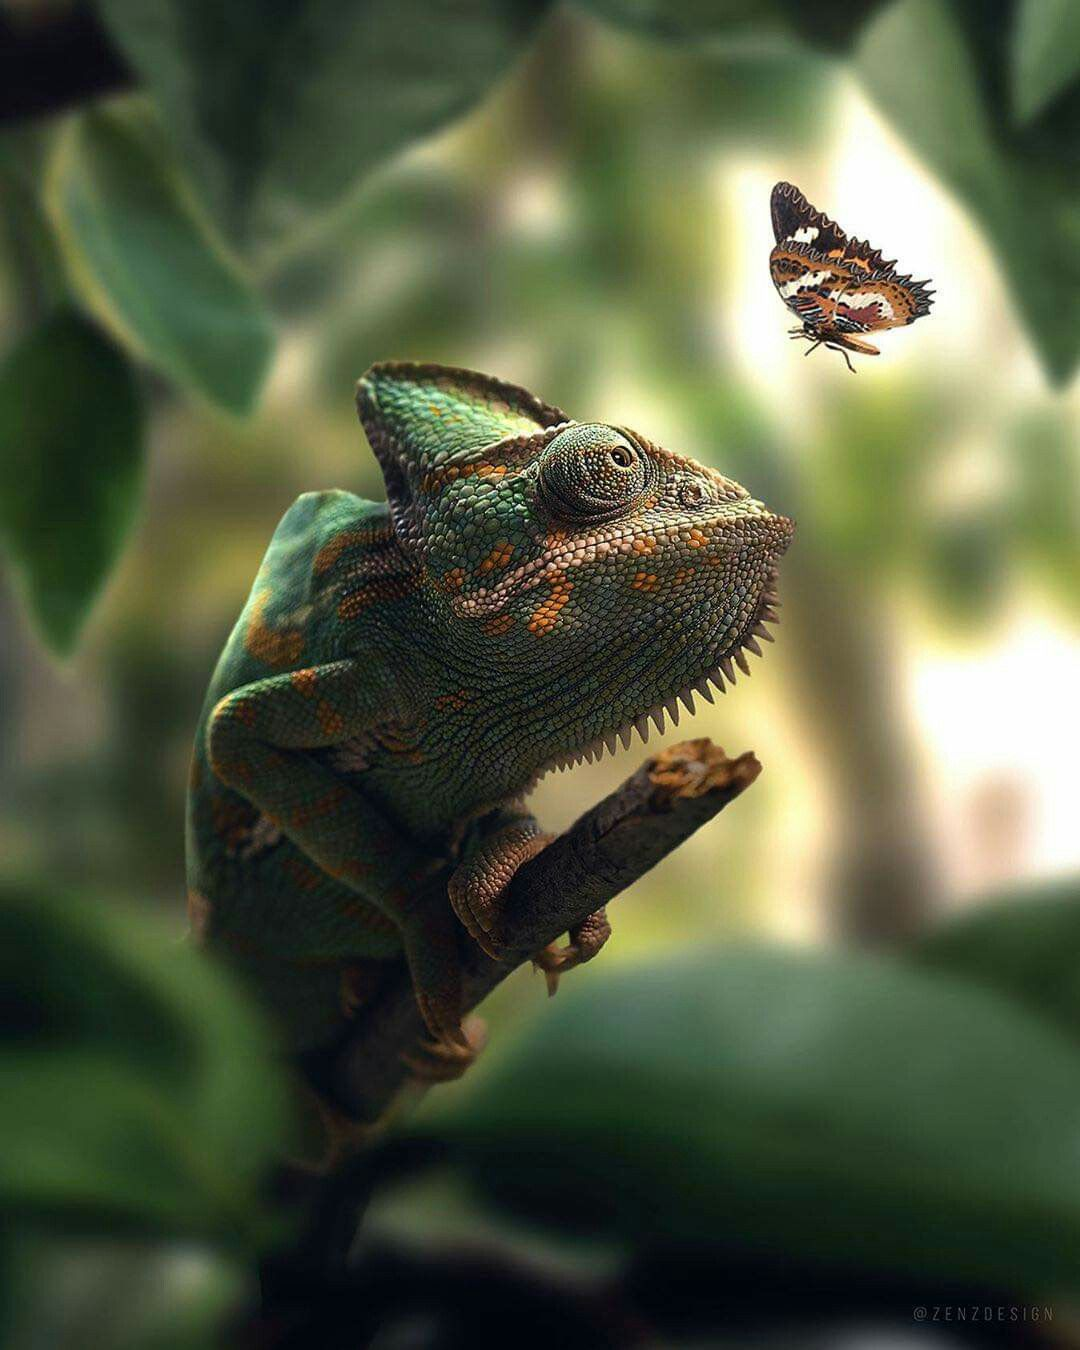 Pin by ♥ Rebecca Phillips ♥ on Reptiles and Insects